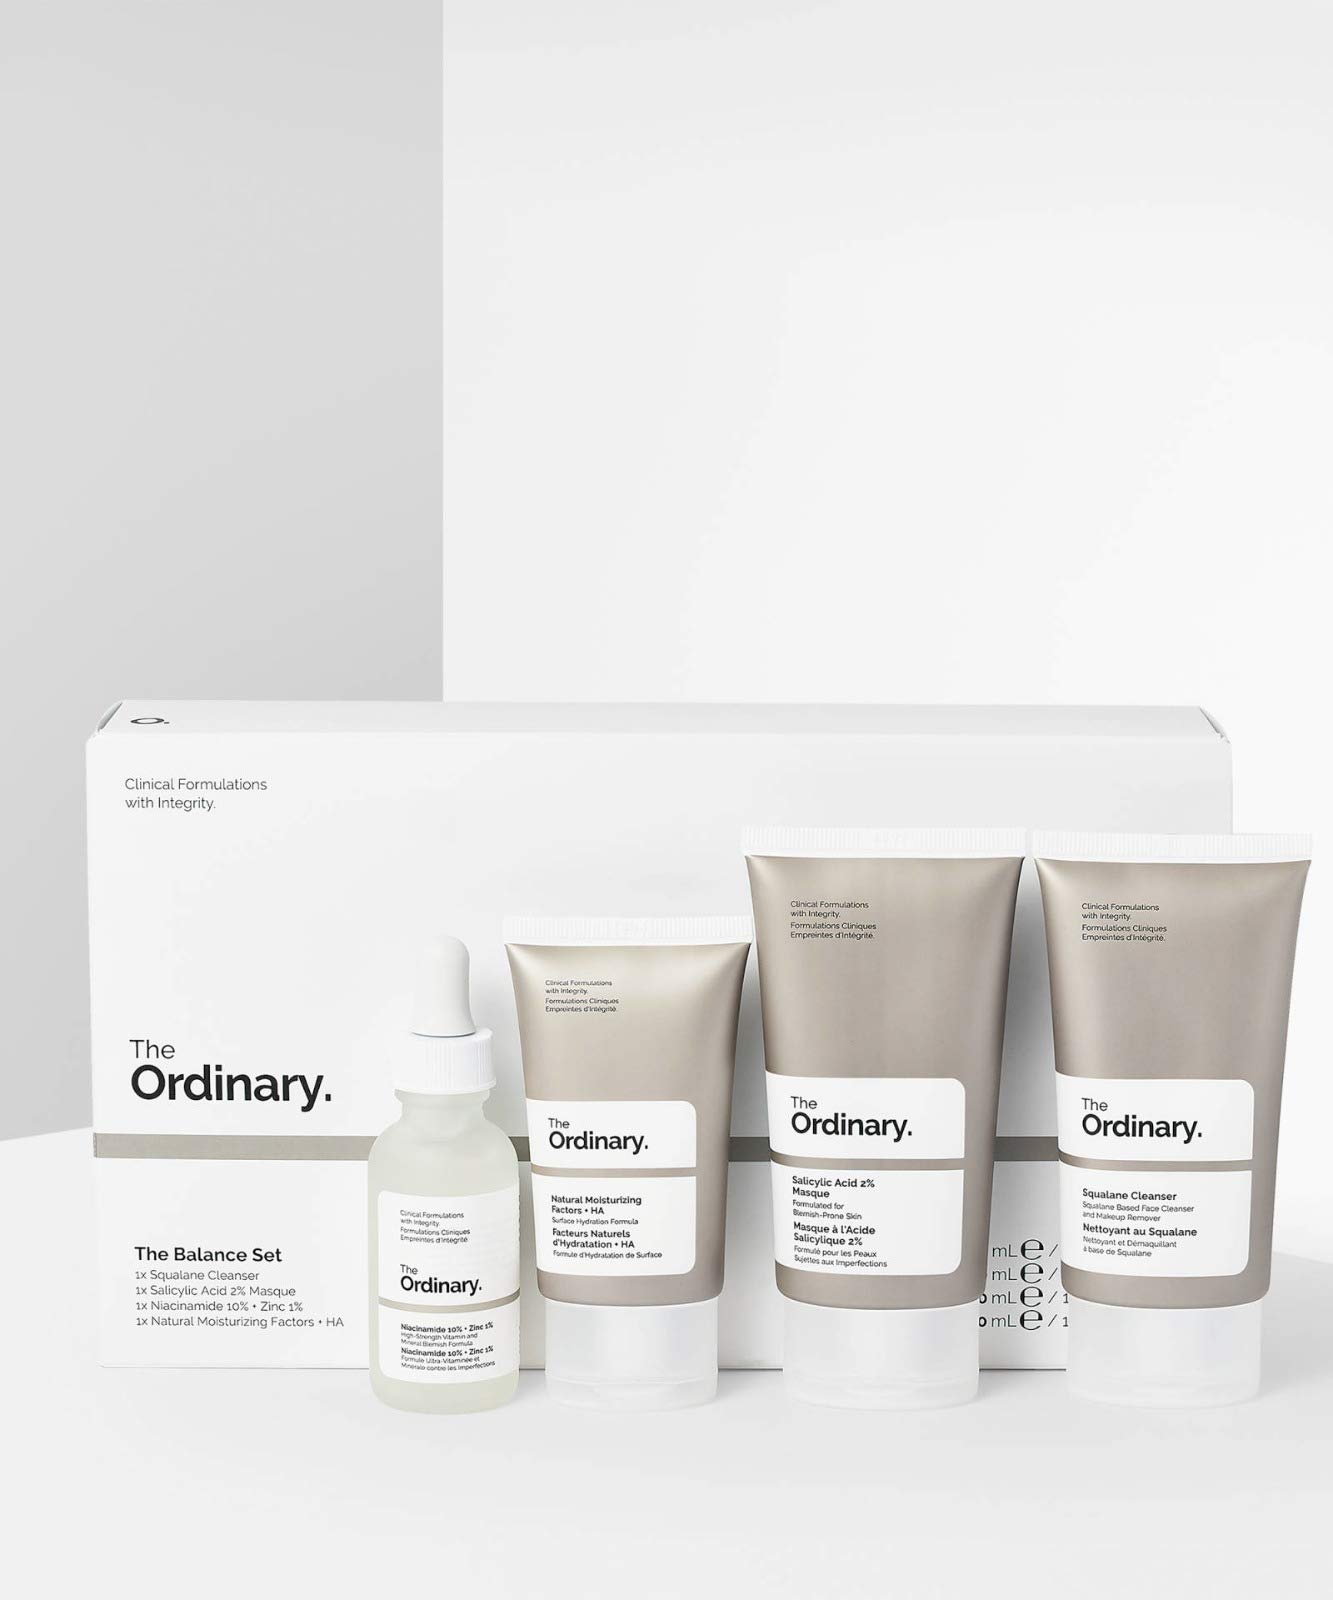 The Ordinary The Balance Set (4 Pcs: Squalance Cleanser + Salicylic Acid 2% Masque + Niacinamide 10% + Zinc 1% + Natural Moisturizing Factors + HA)